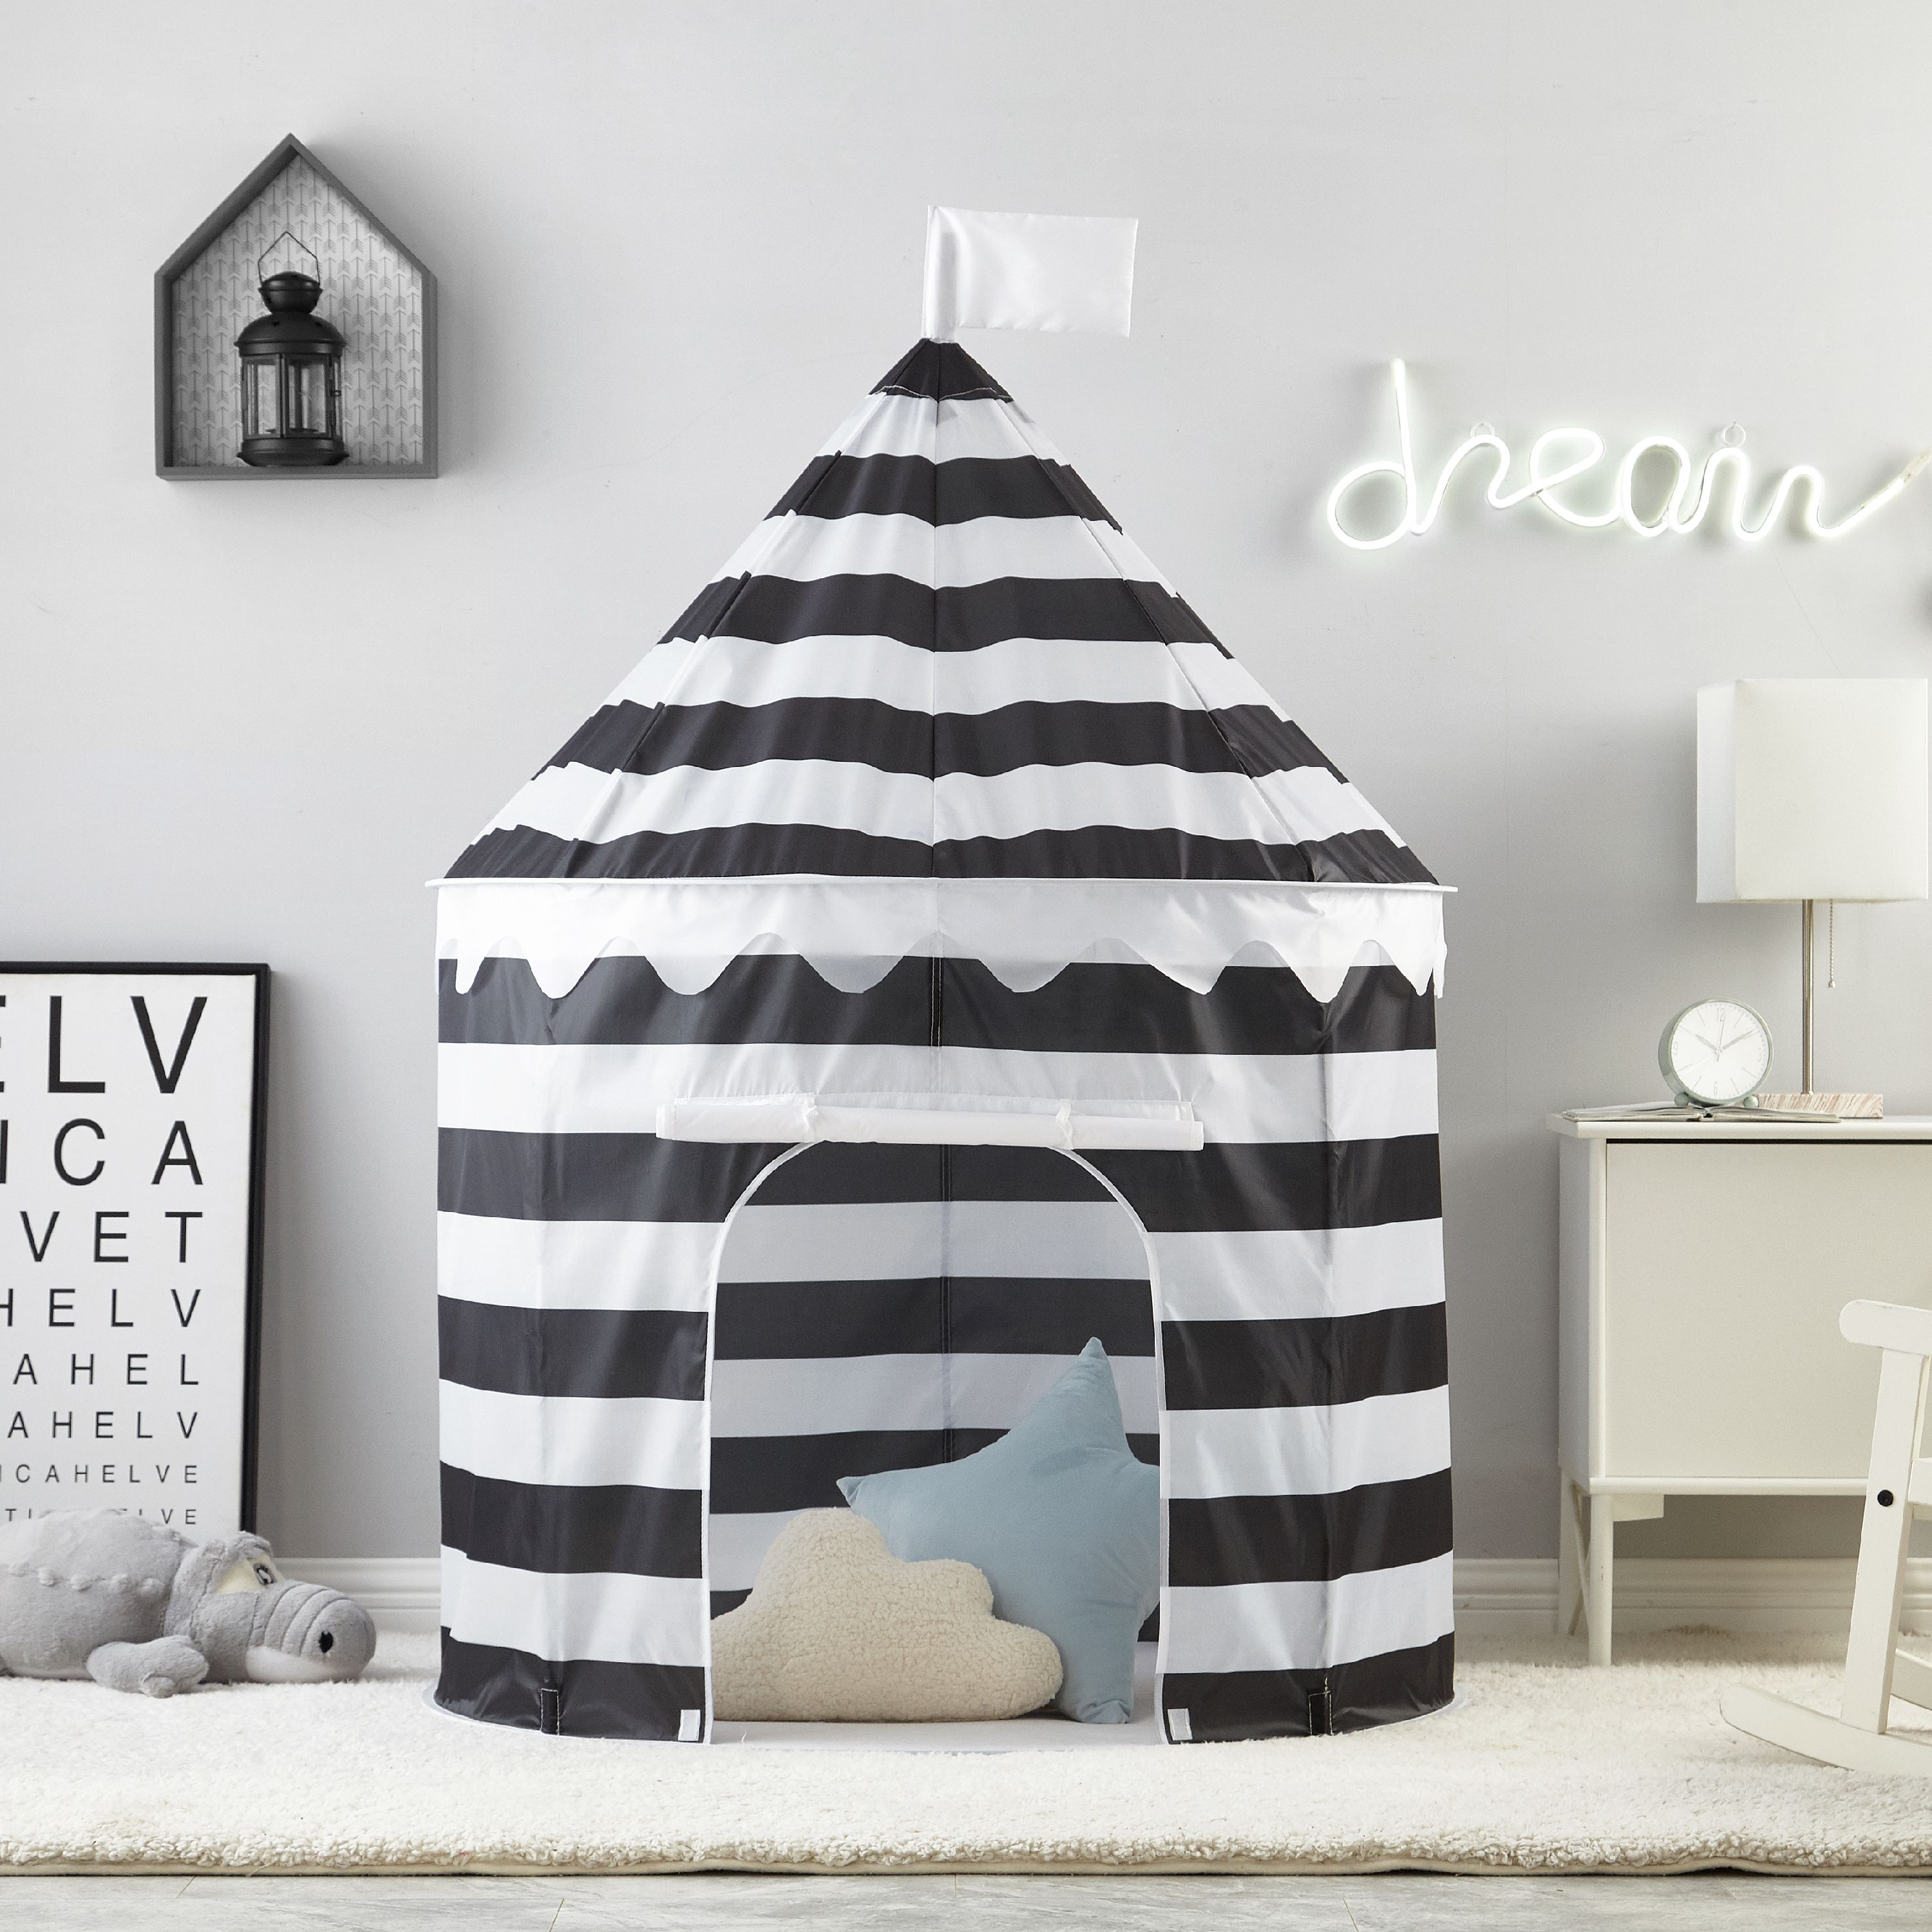 Mainstays Circular Kids Play Tent, Black and White Stripe